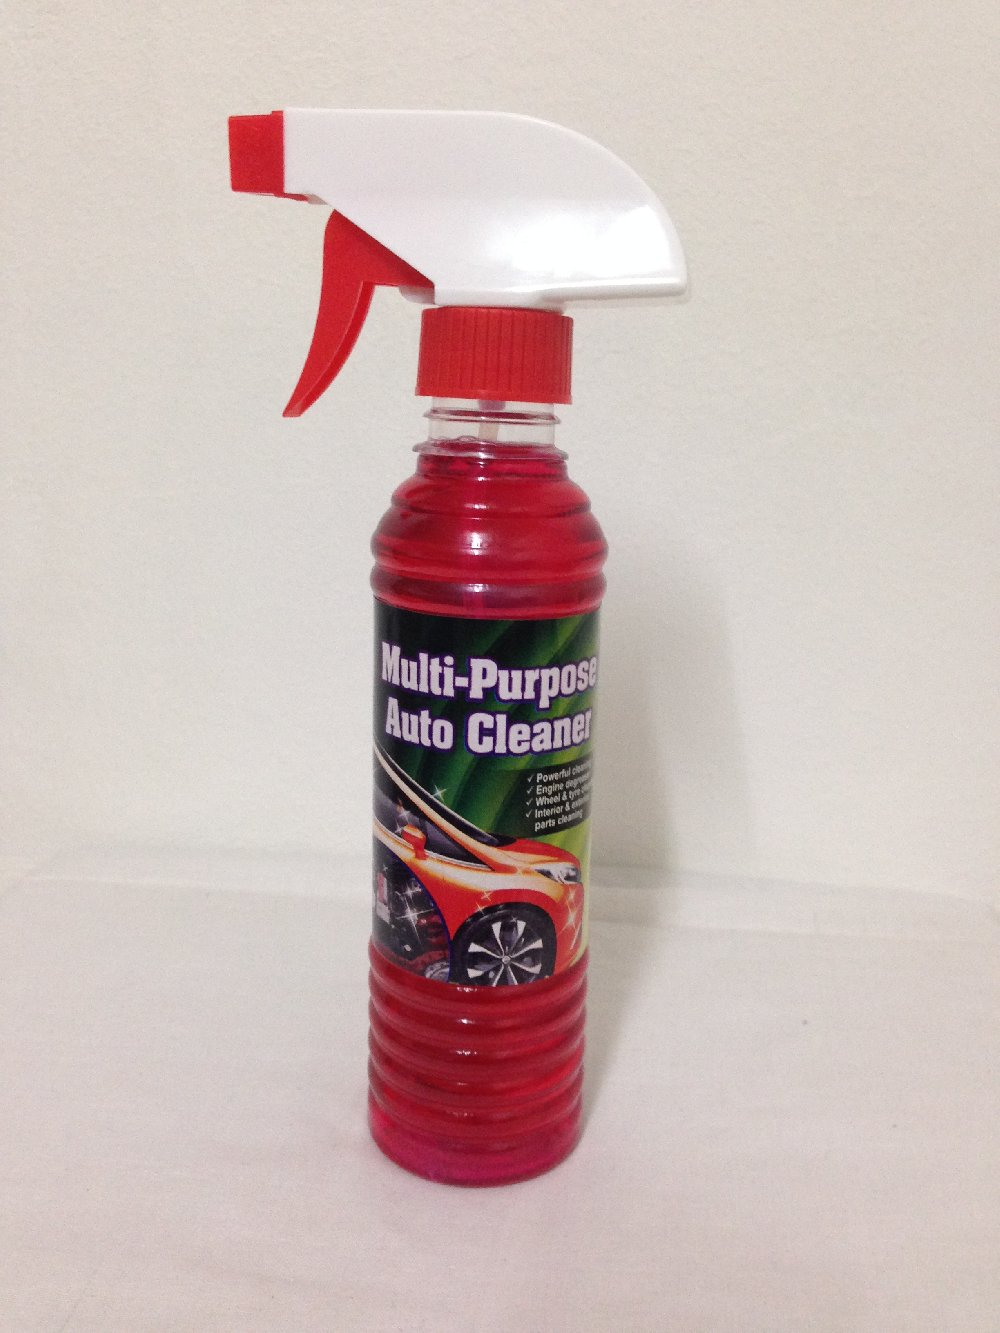 Auto Care Multipurpose Auto Cleaner 3311